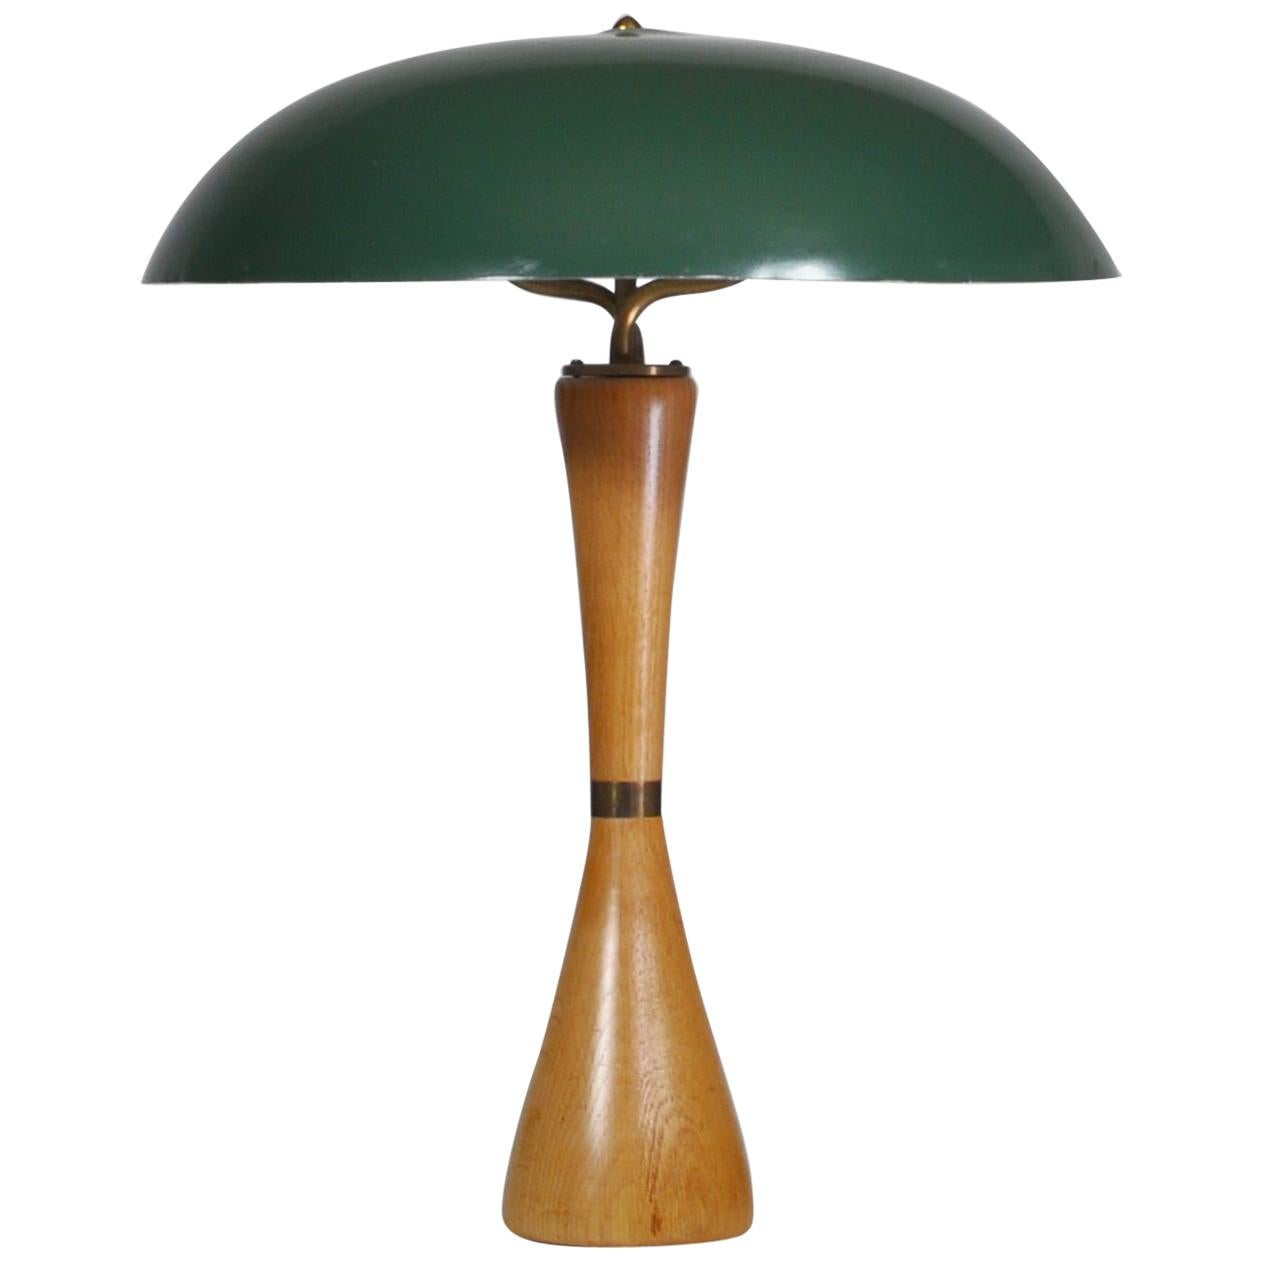 1950s Hans Bergström Table Lamp with Green Shade Made by ASEA, Sweden